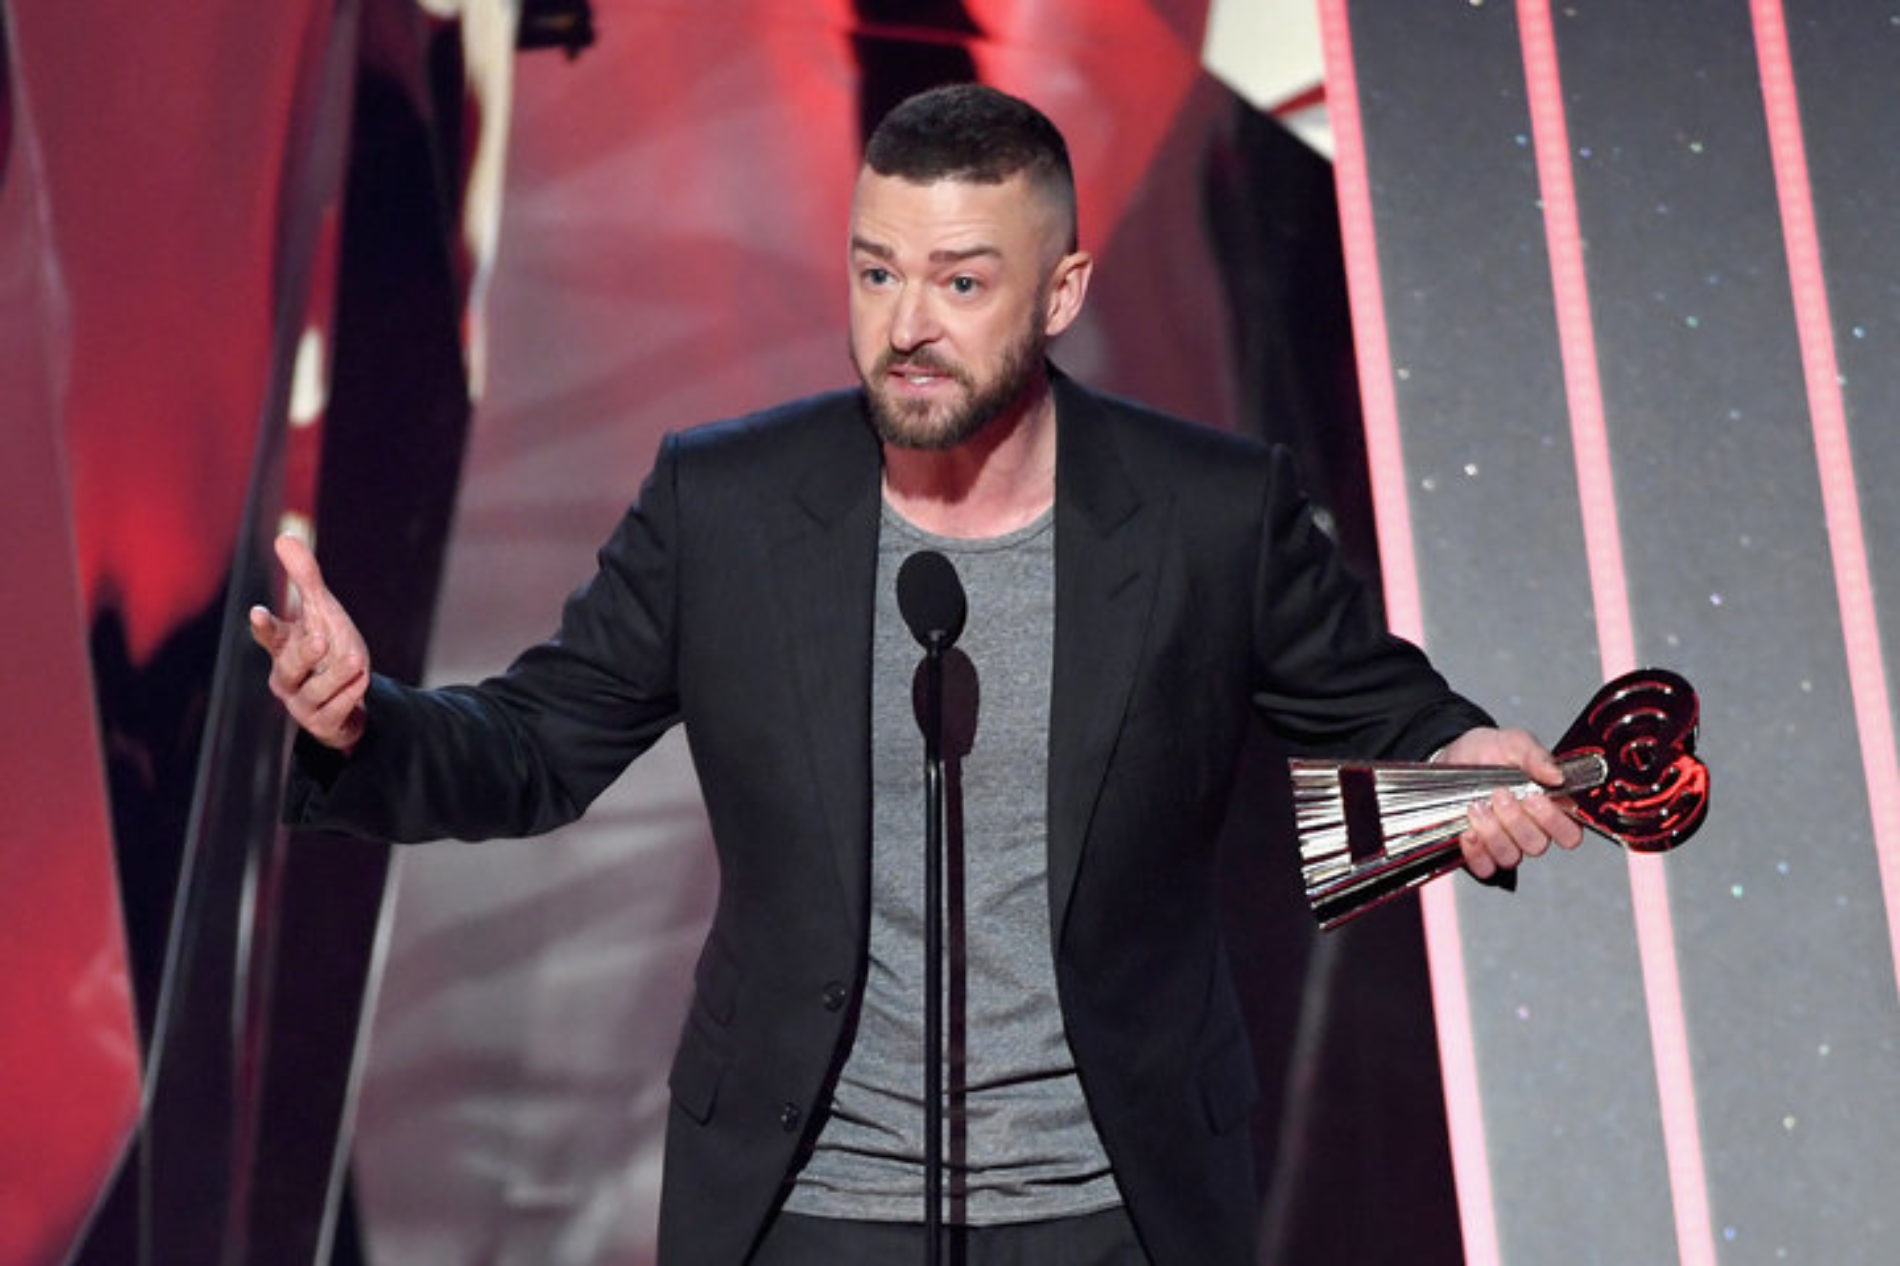 Justin Timberlake expresses support for LGBTQ youth during amazing acceptance speech